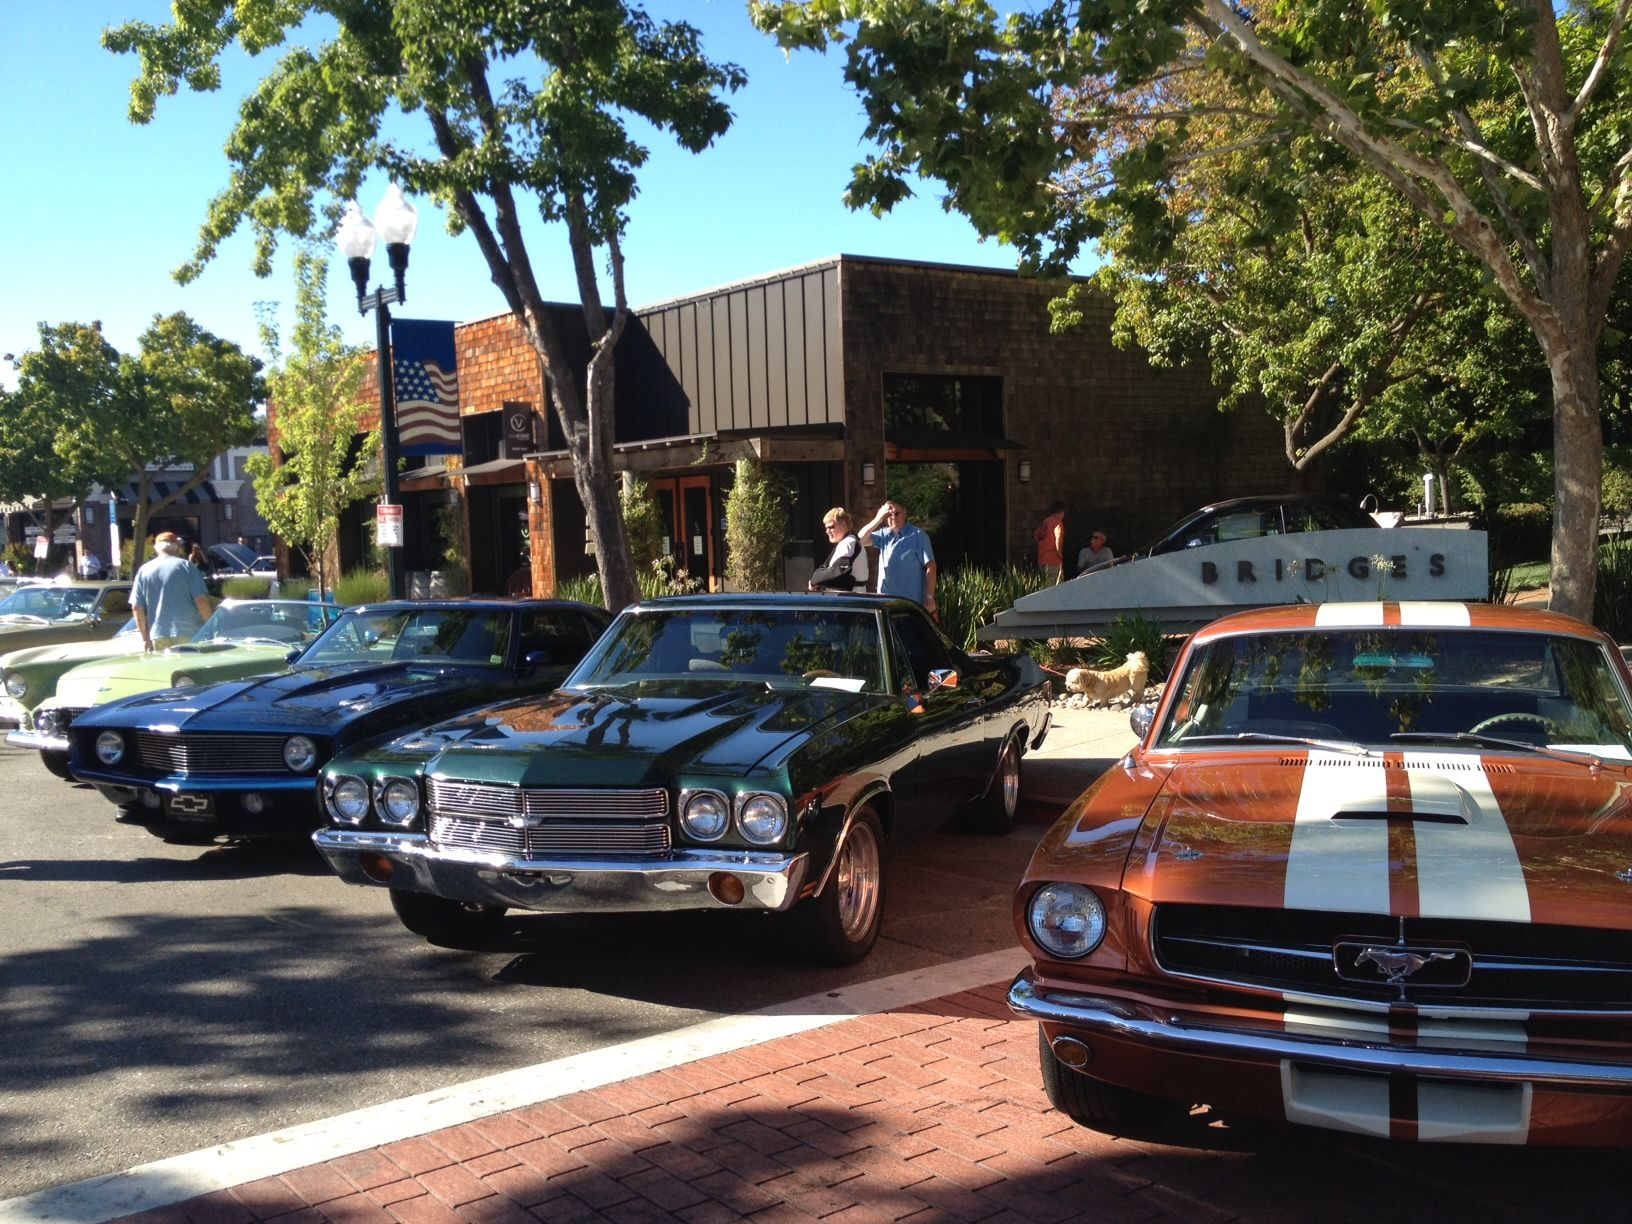 Hot Summer Nights Car Show in Downtown Danville CA July 18 & August